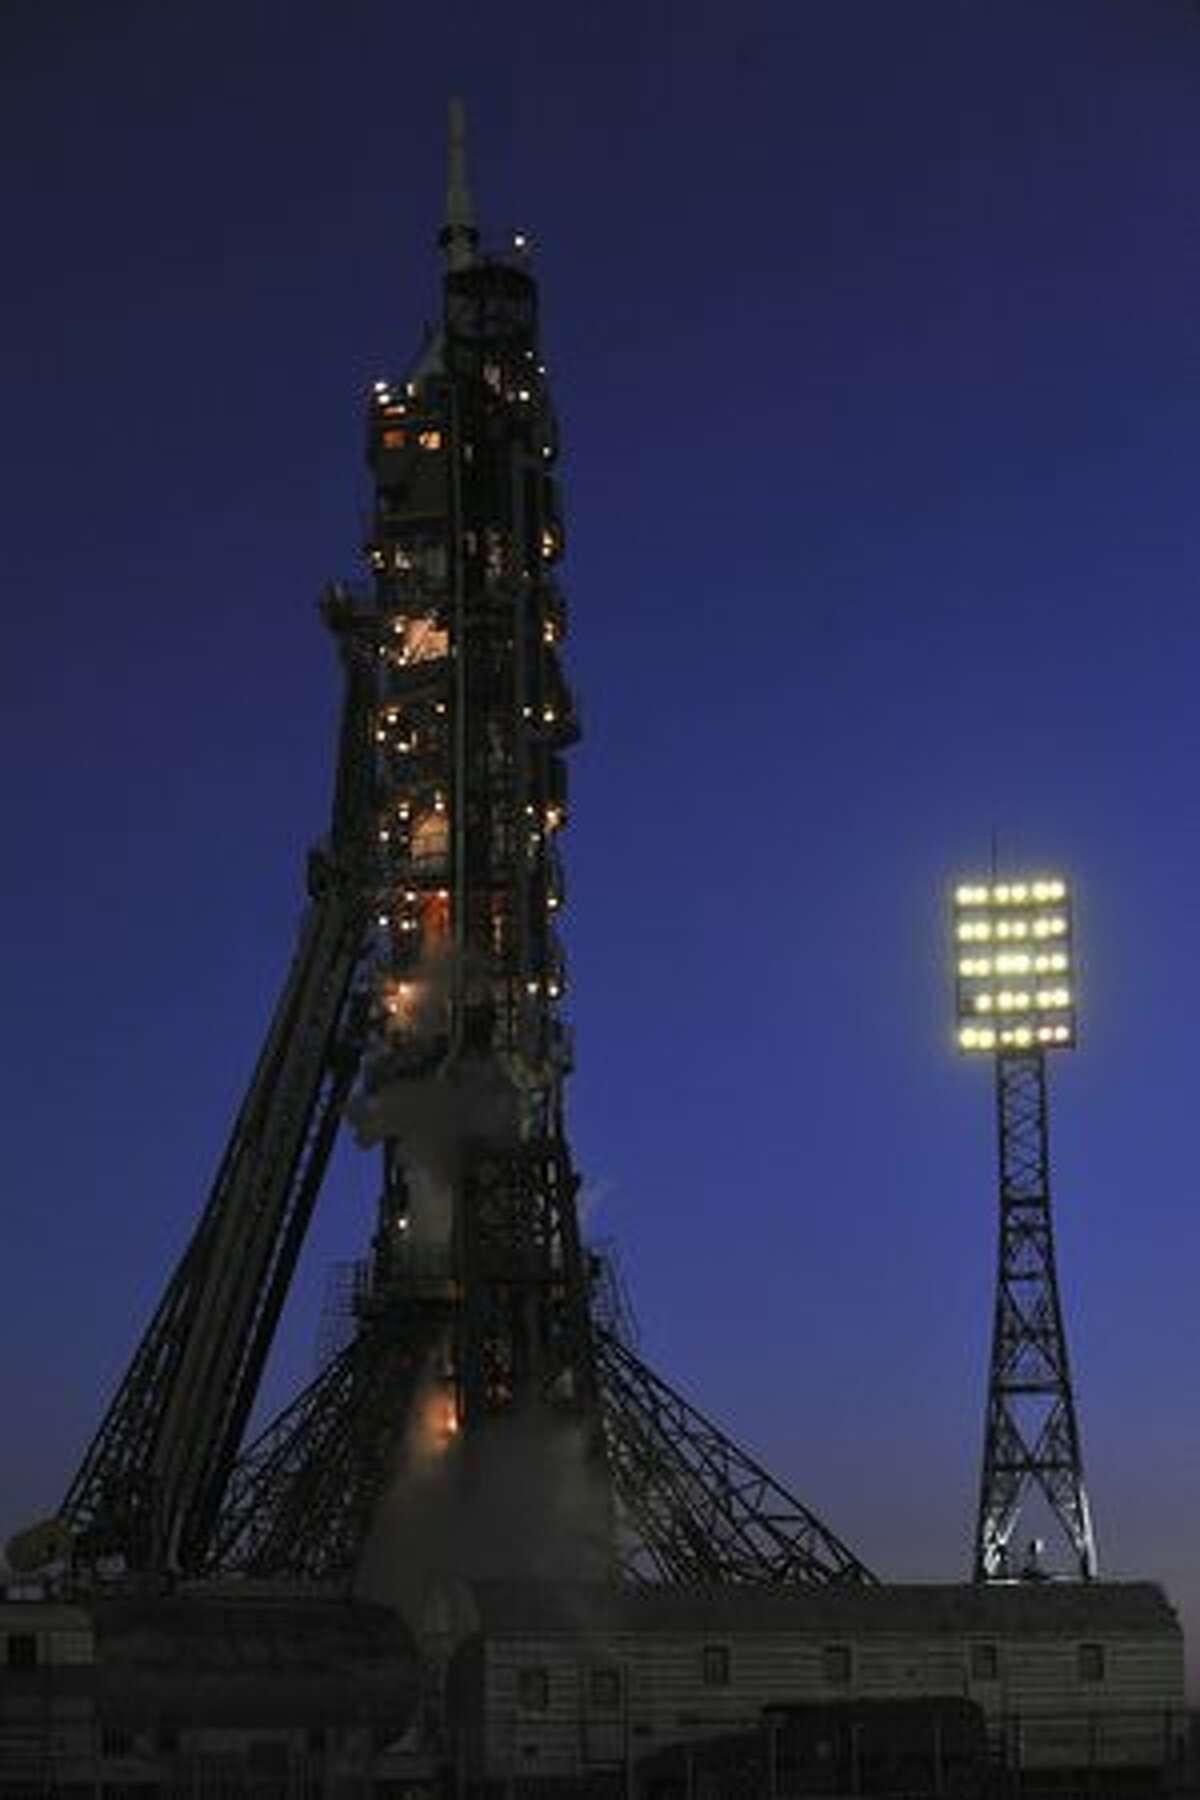 A Russian Soyuz TMA-18 rocket is seen in preparation for the launch of U.S. astronaut Tracy Caldwell Dyson and Russian cosmonauts Alexander Skvortsov and Mikhail Kornienko at Kazakhstan's Russian-leased Baikonur cosmodrome on April 2, 2010 to the International Space Station.